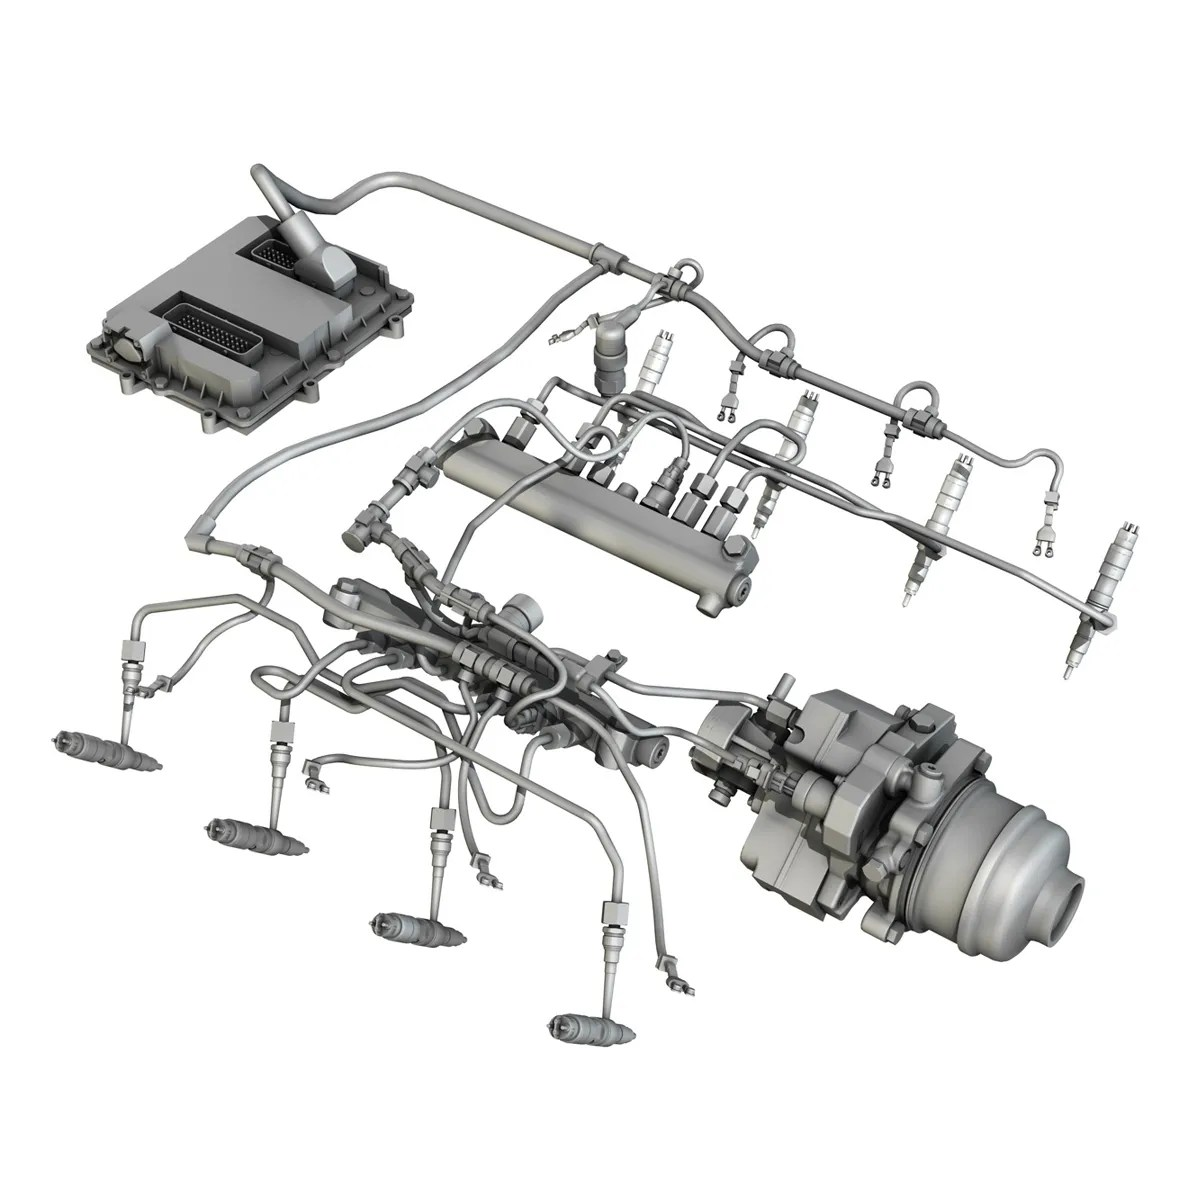 Injection System Of A V8 Engine 3d Model Buy Injection System Of A V8 Engine 3d Model